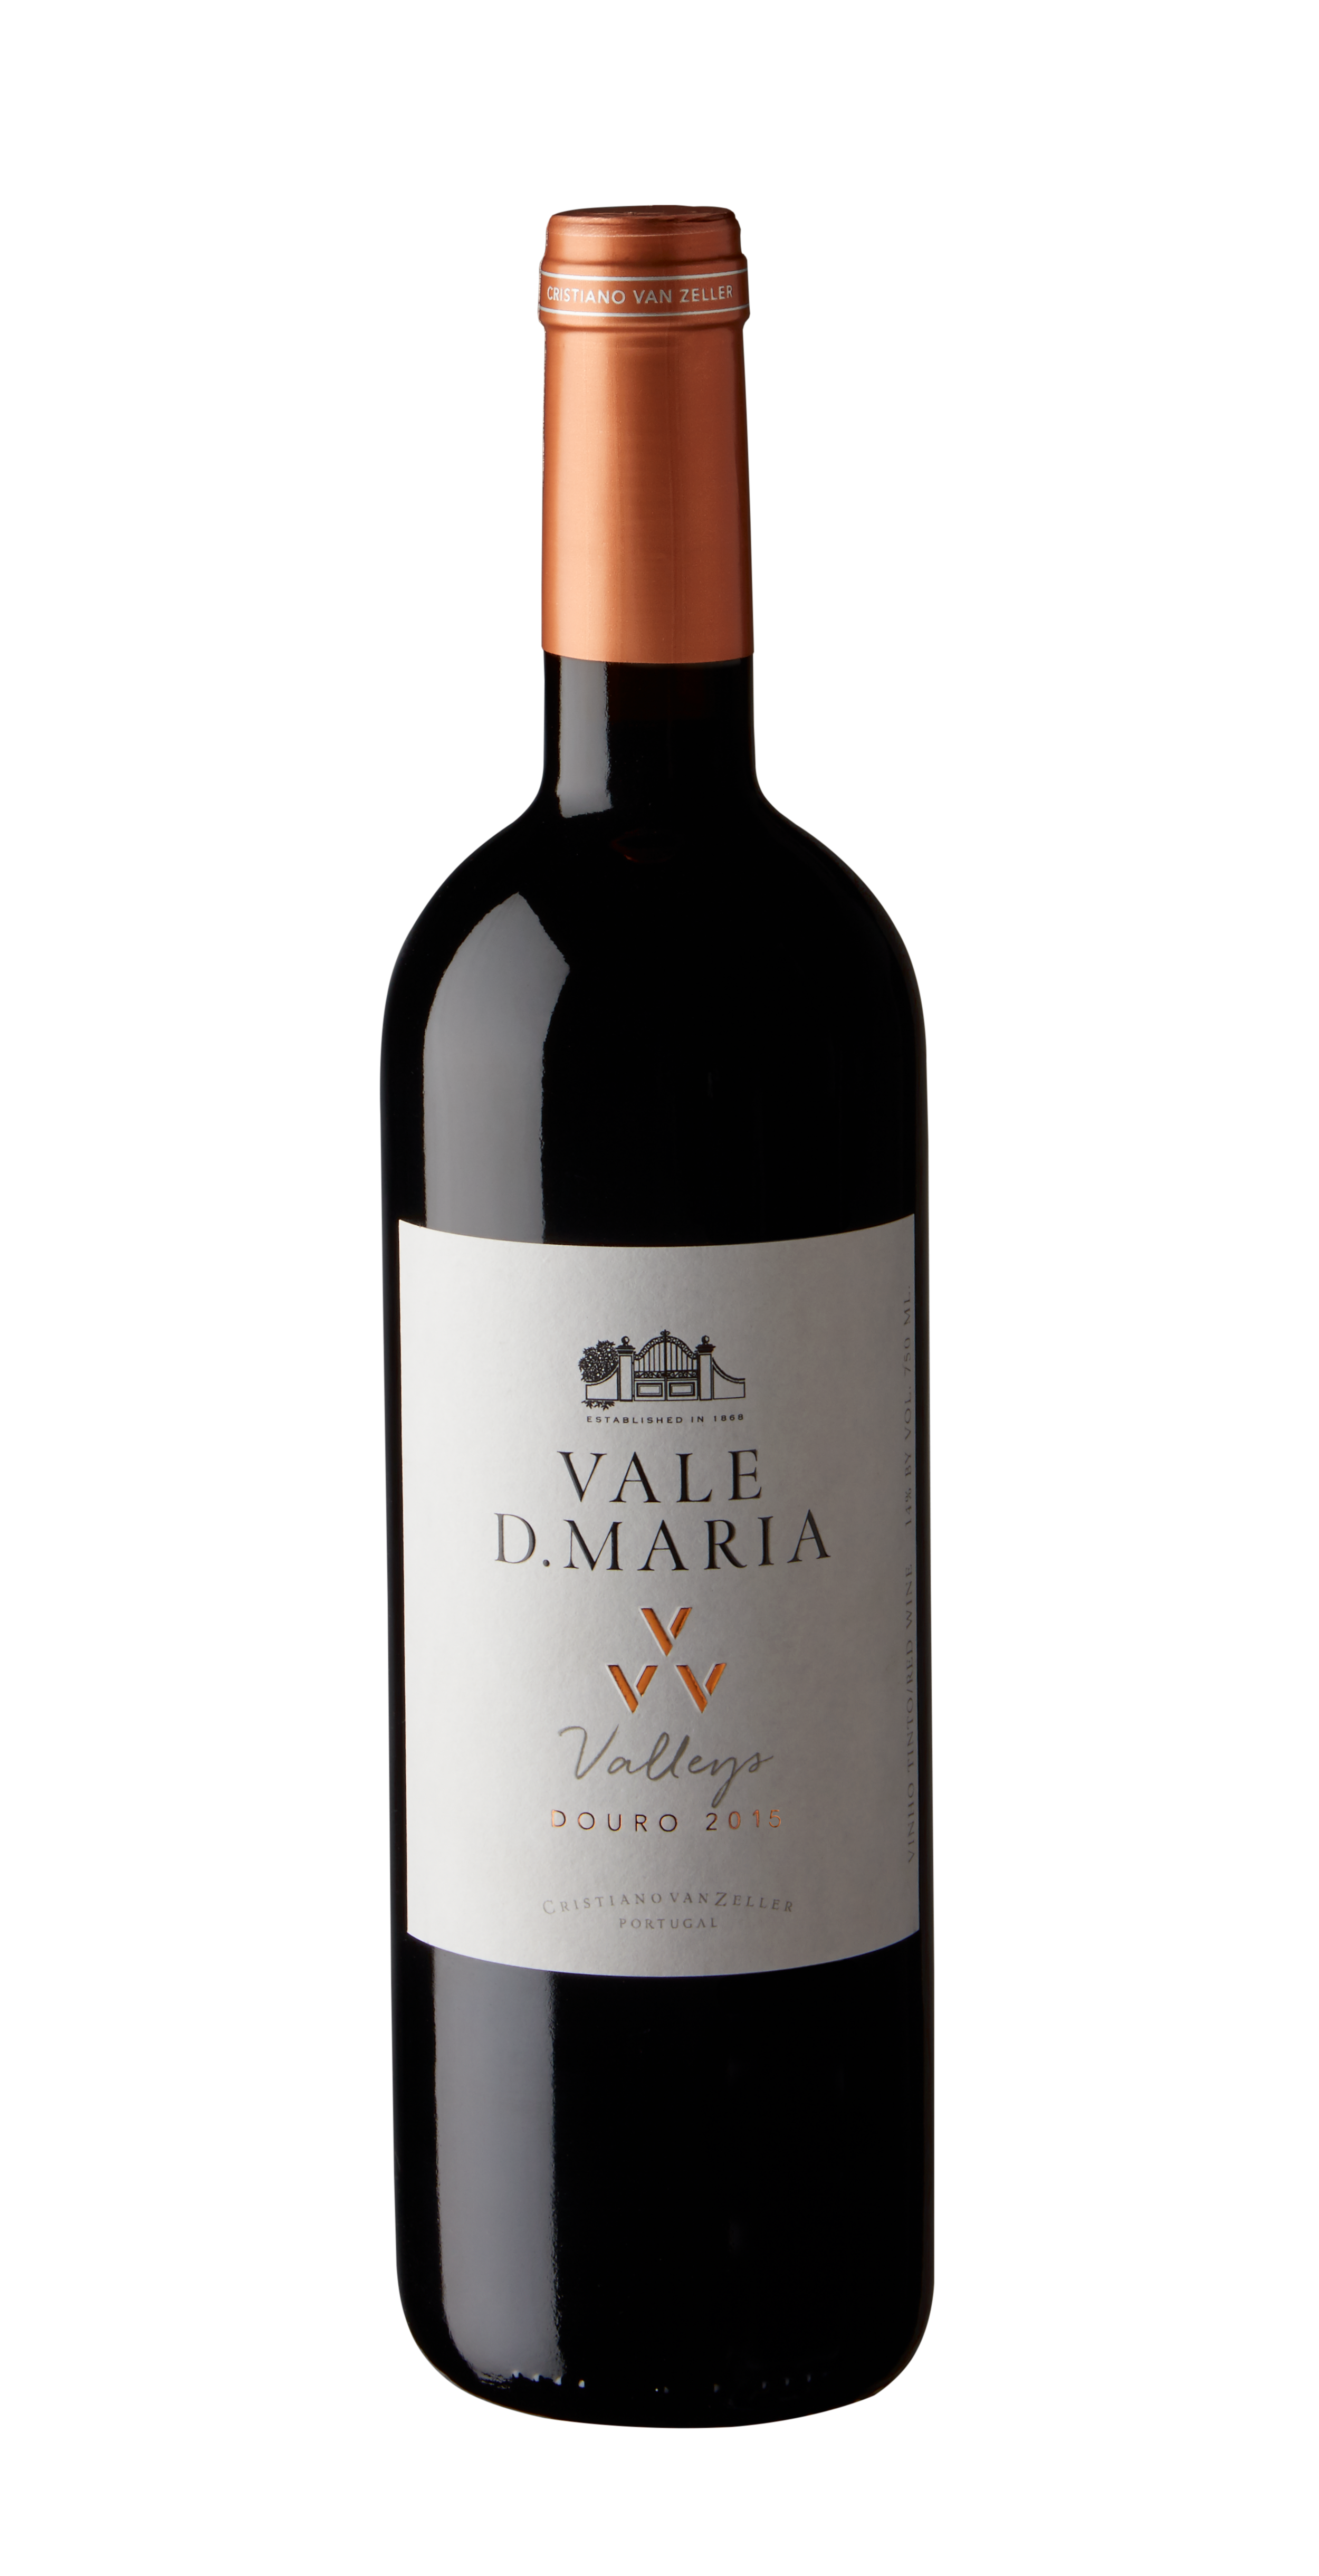 Vale D. Maria 2013 VVV Valleys Douro Tinto 75cl_15_bt.png